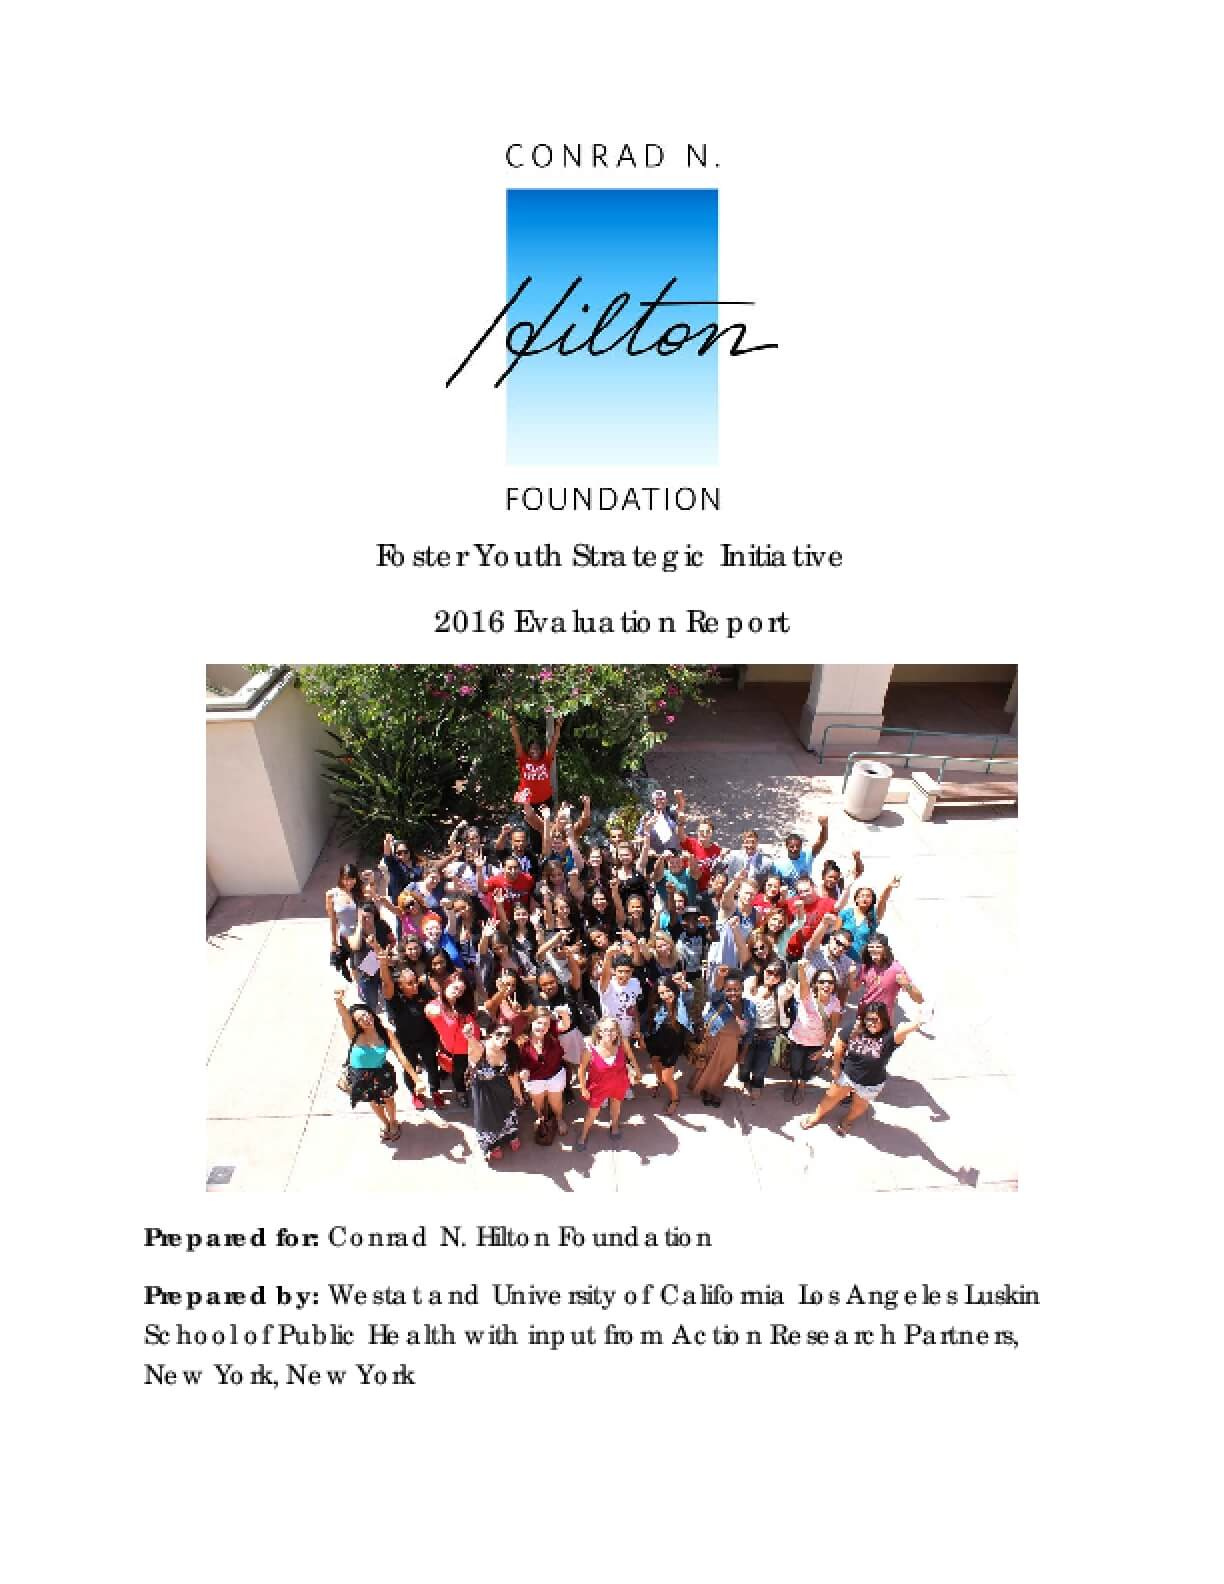 Foster Youth Strategic Initiative: 2016 Evaluation Report